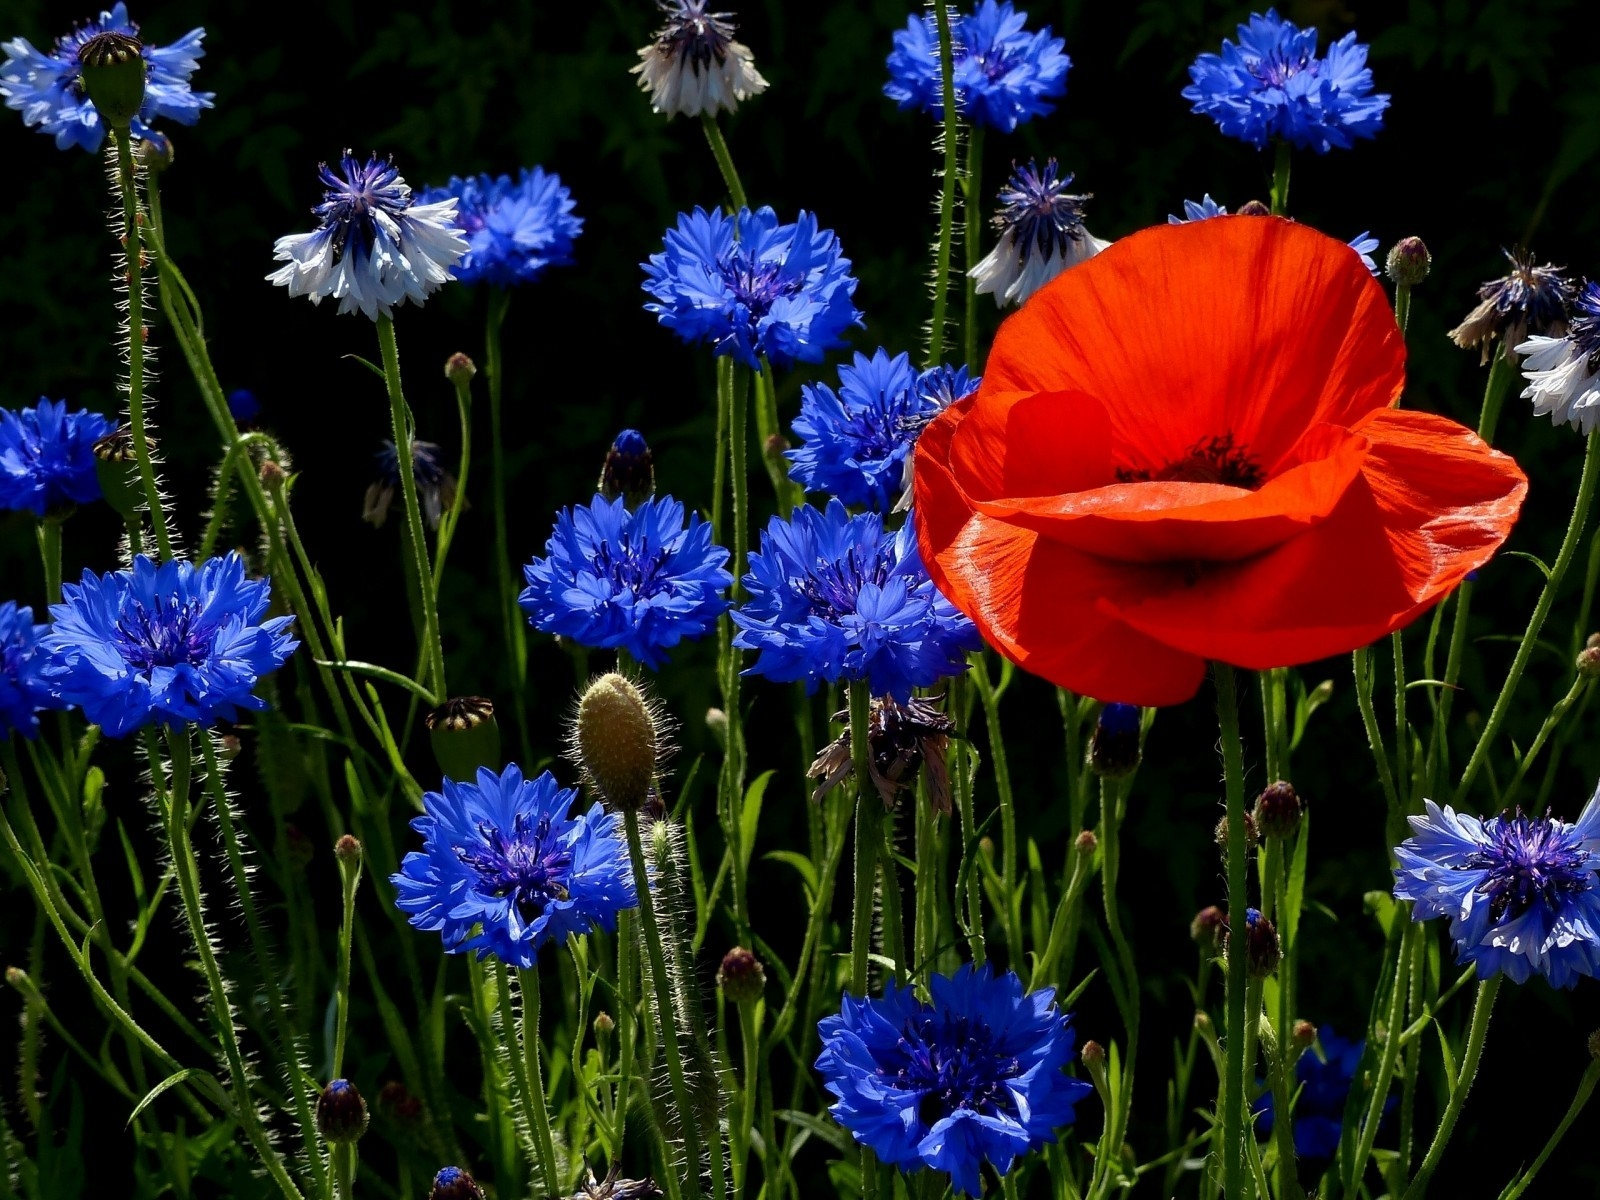 Poppies and Cornflowers for 1600 x 1200 resolution